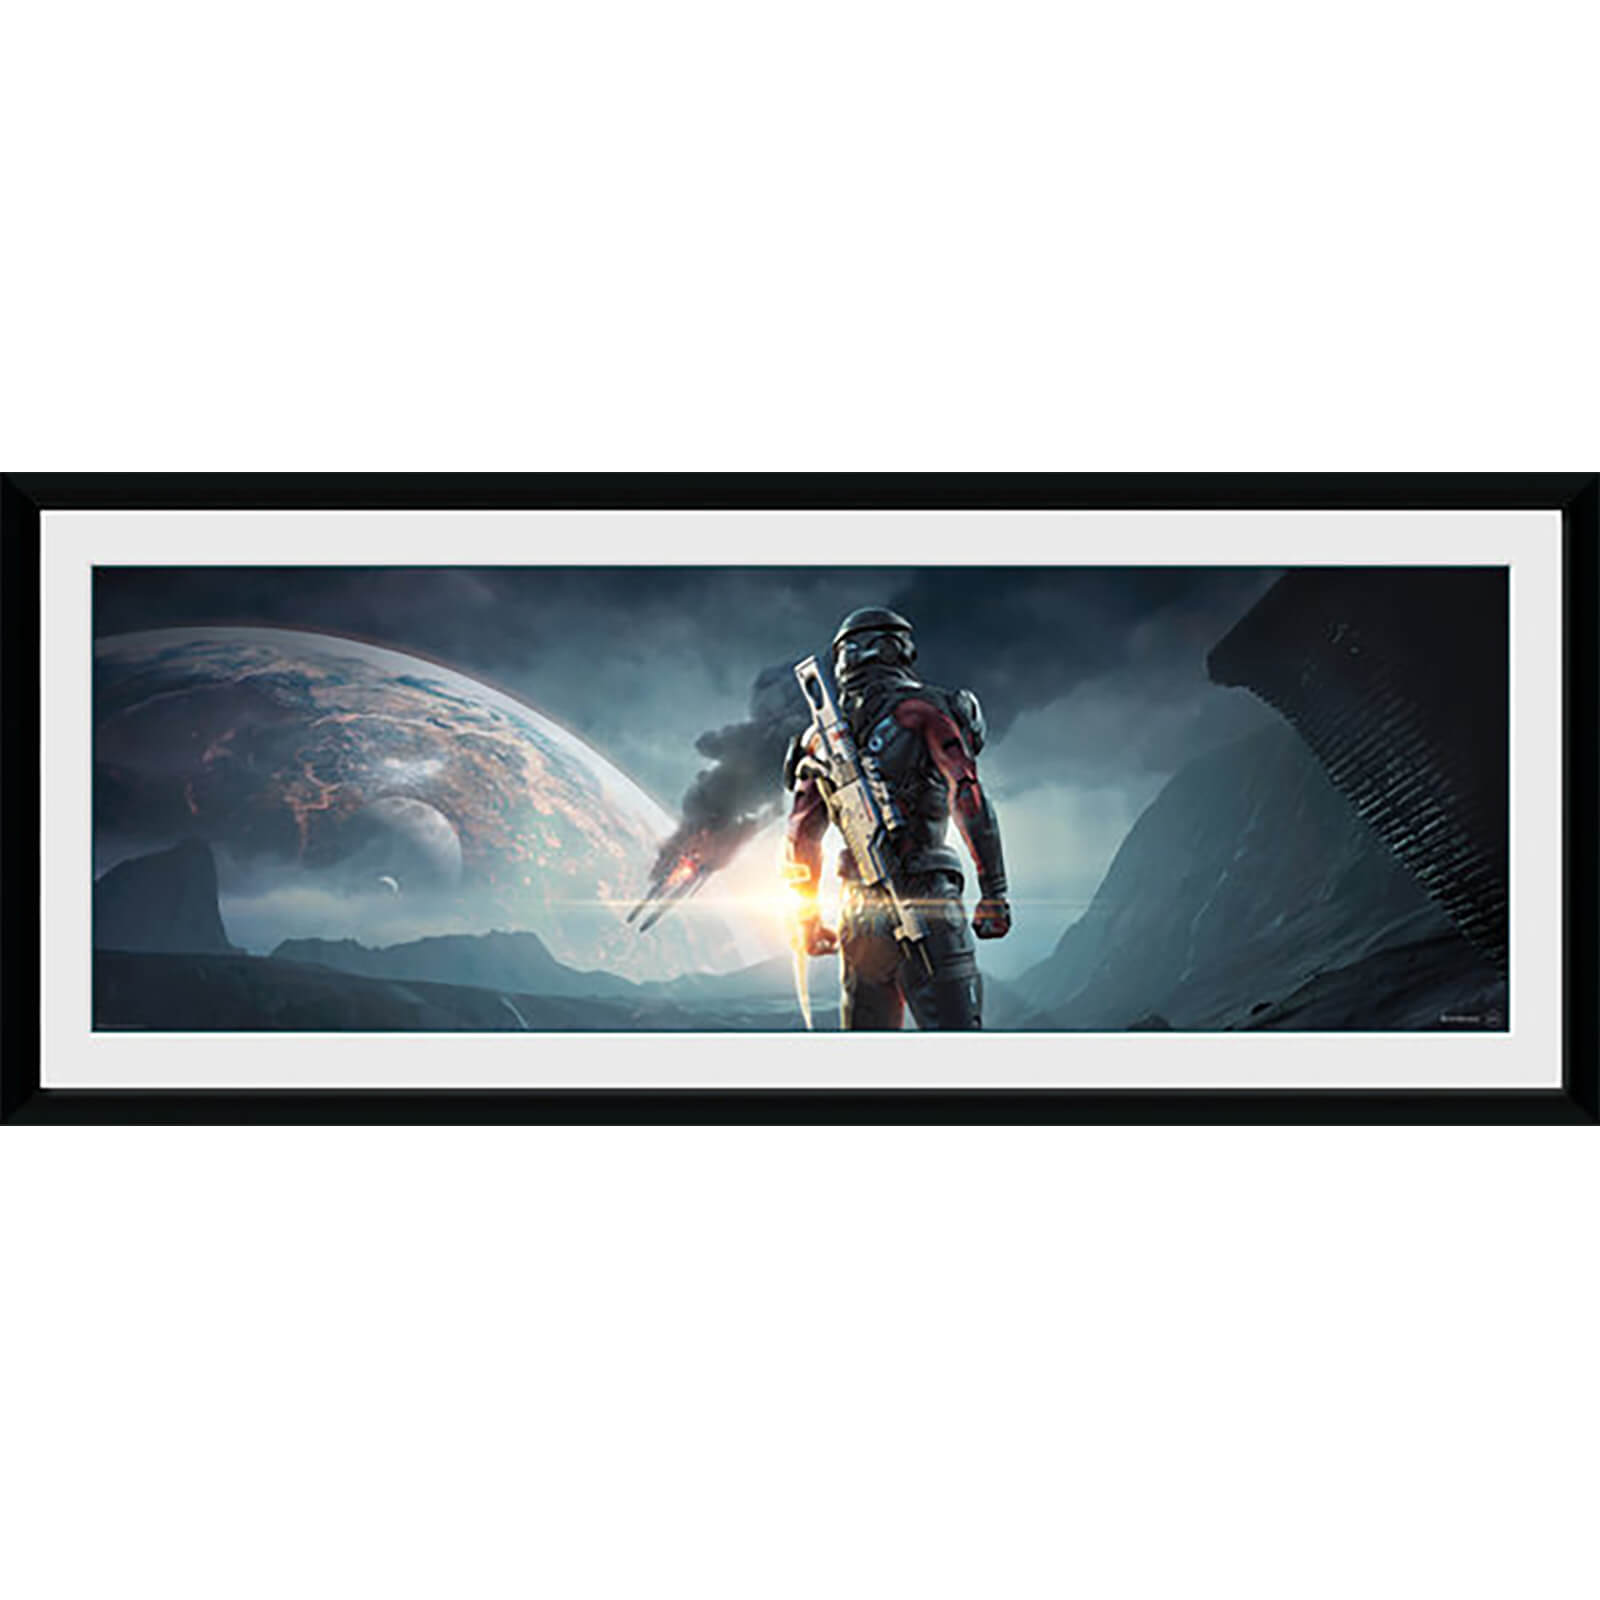 Mass Effect: Andromeda Landscape - 30 x 12 Inches Framed Photograph